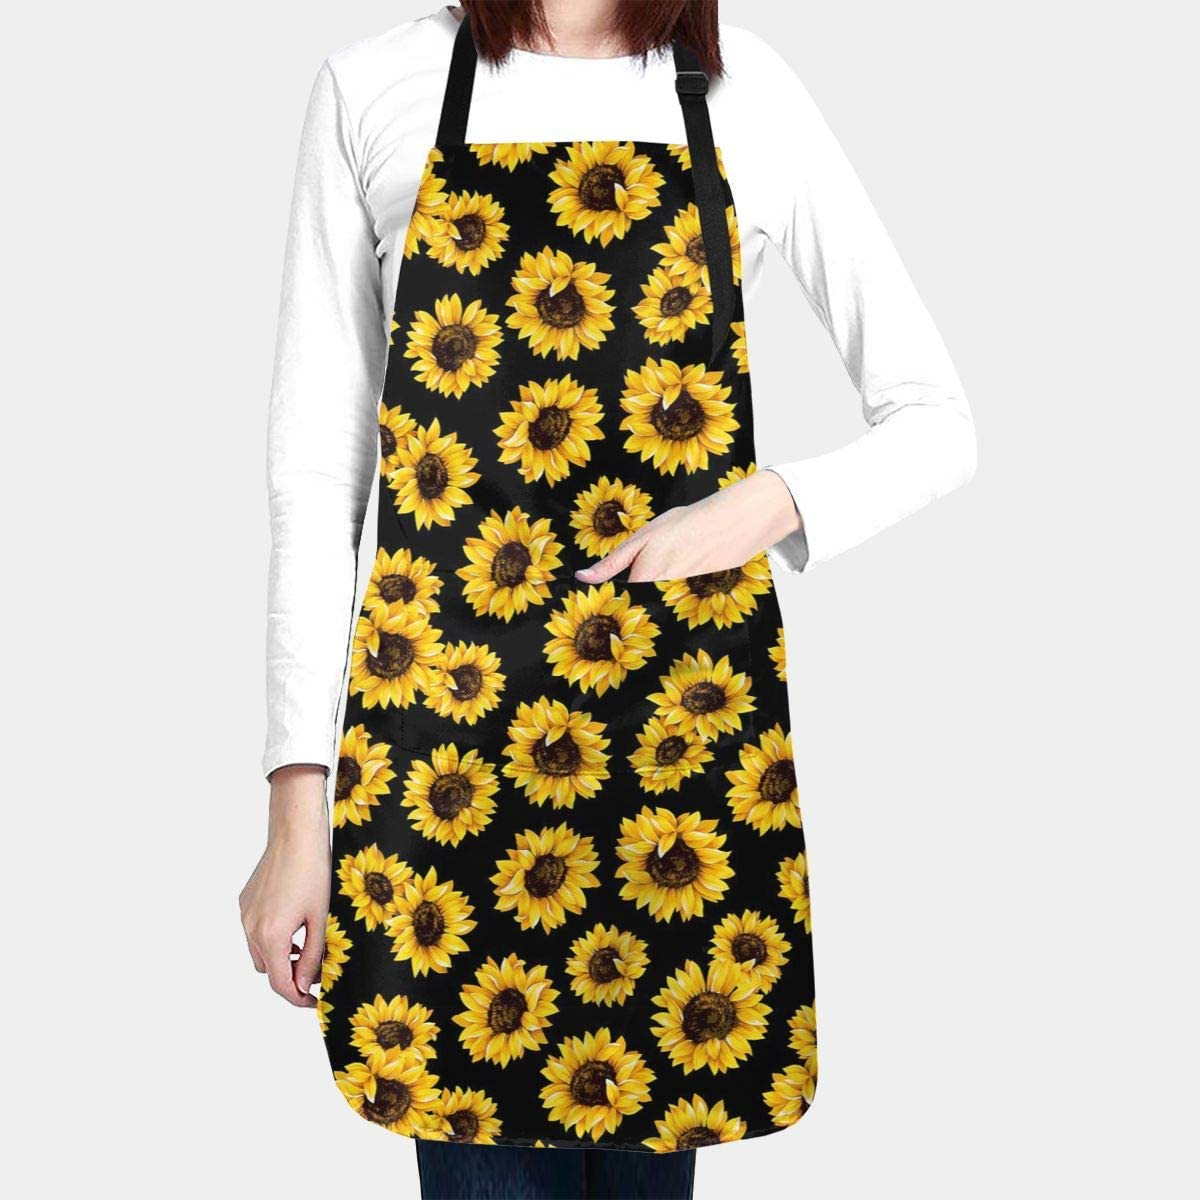 ZJBLHEQ Hipster Golden Sunflowers Adult Kitchen Apron with 2 Pockets Adjustable Ties Waterproof Chef Bib Fit Cooking Baking Drawing BBQ for Women Men